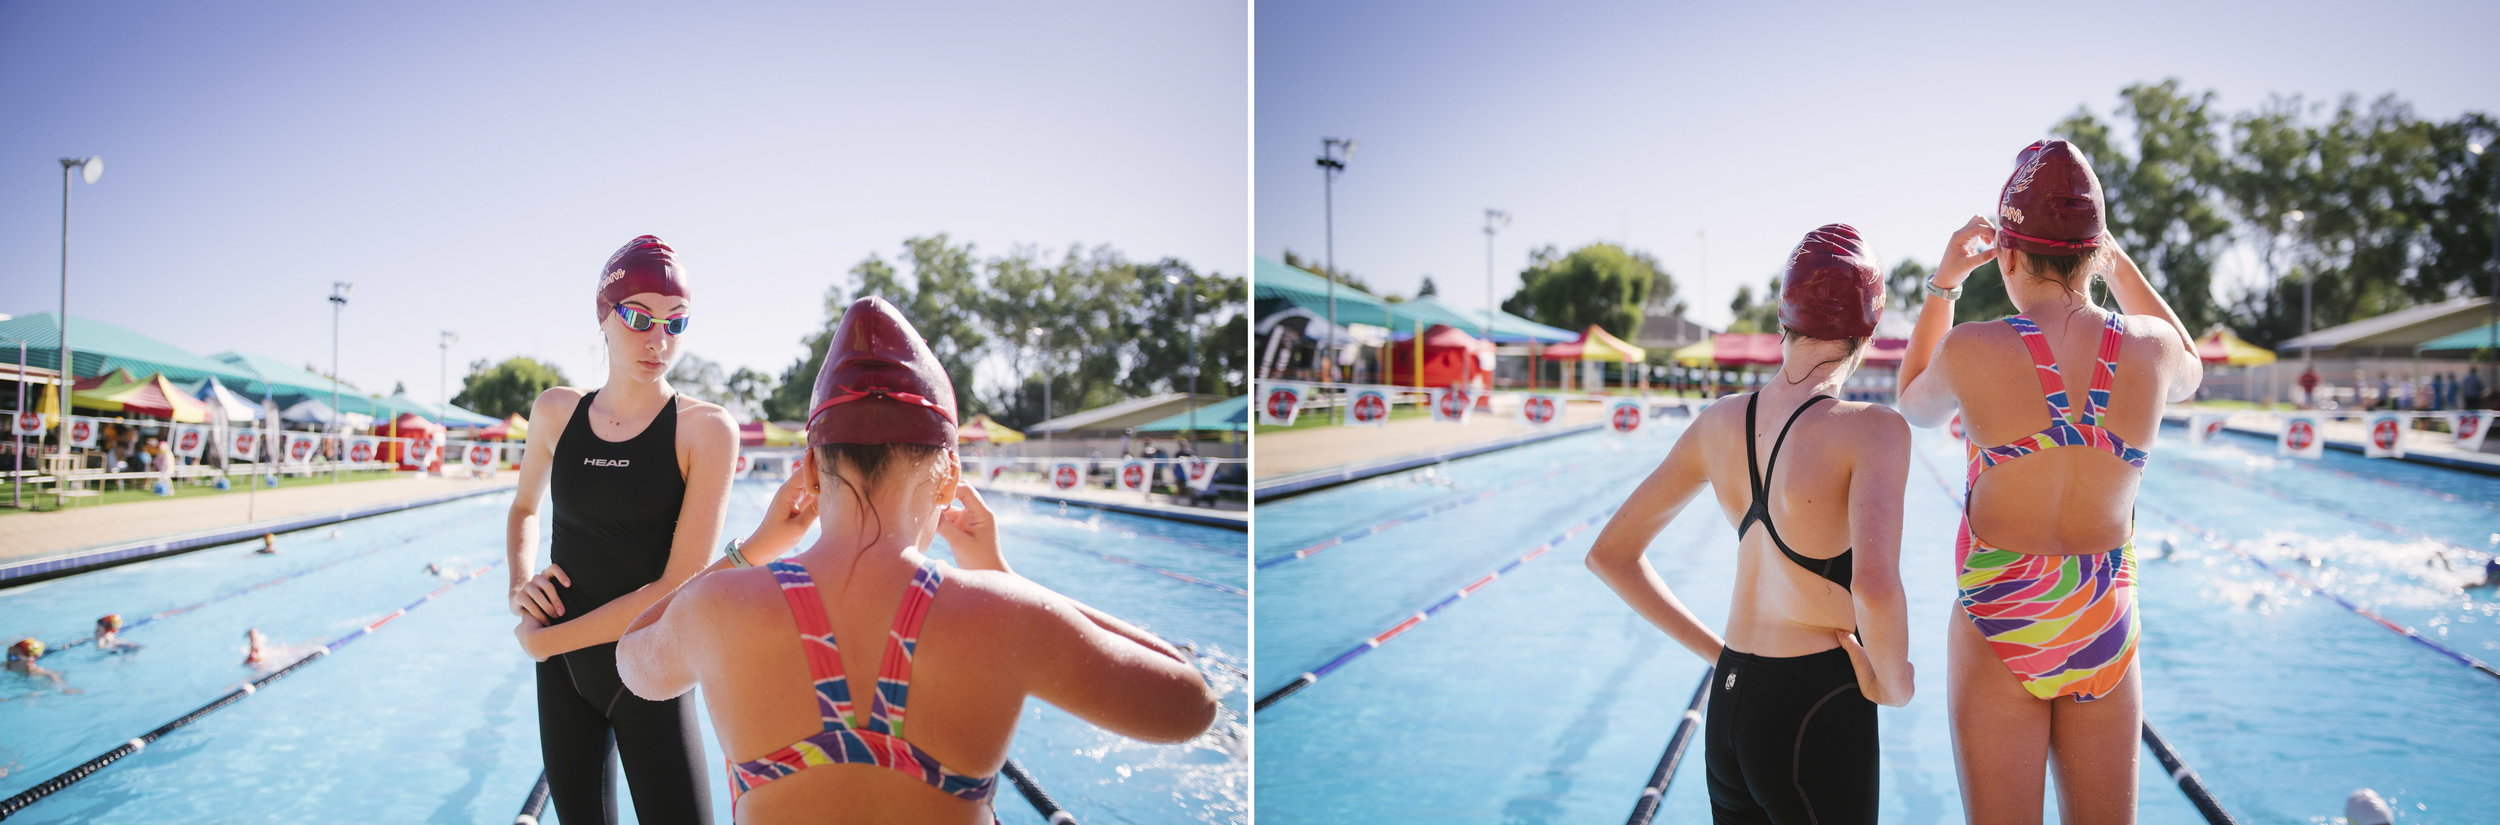 Angie Roe Photography Northam Swimming Event (3and4).jpg